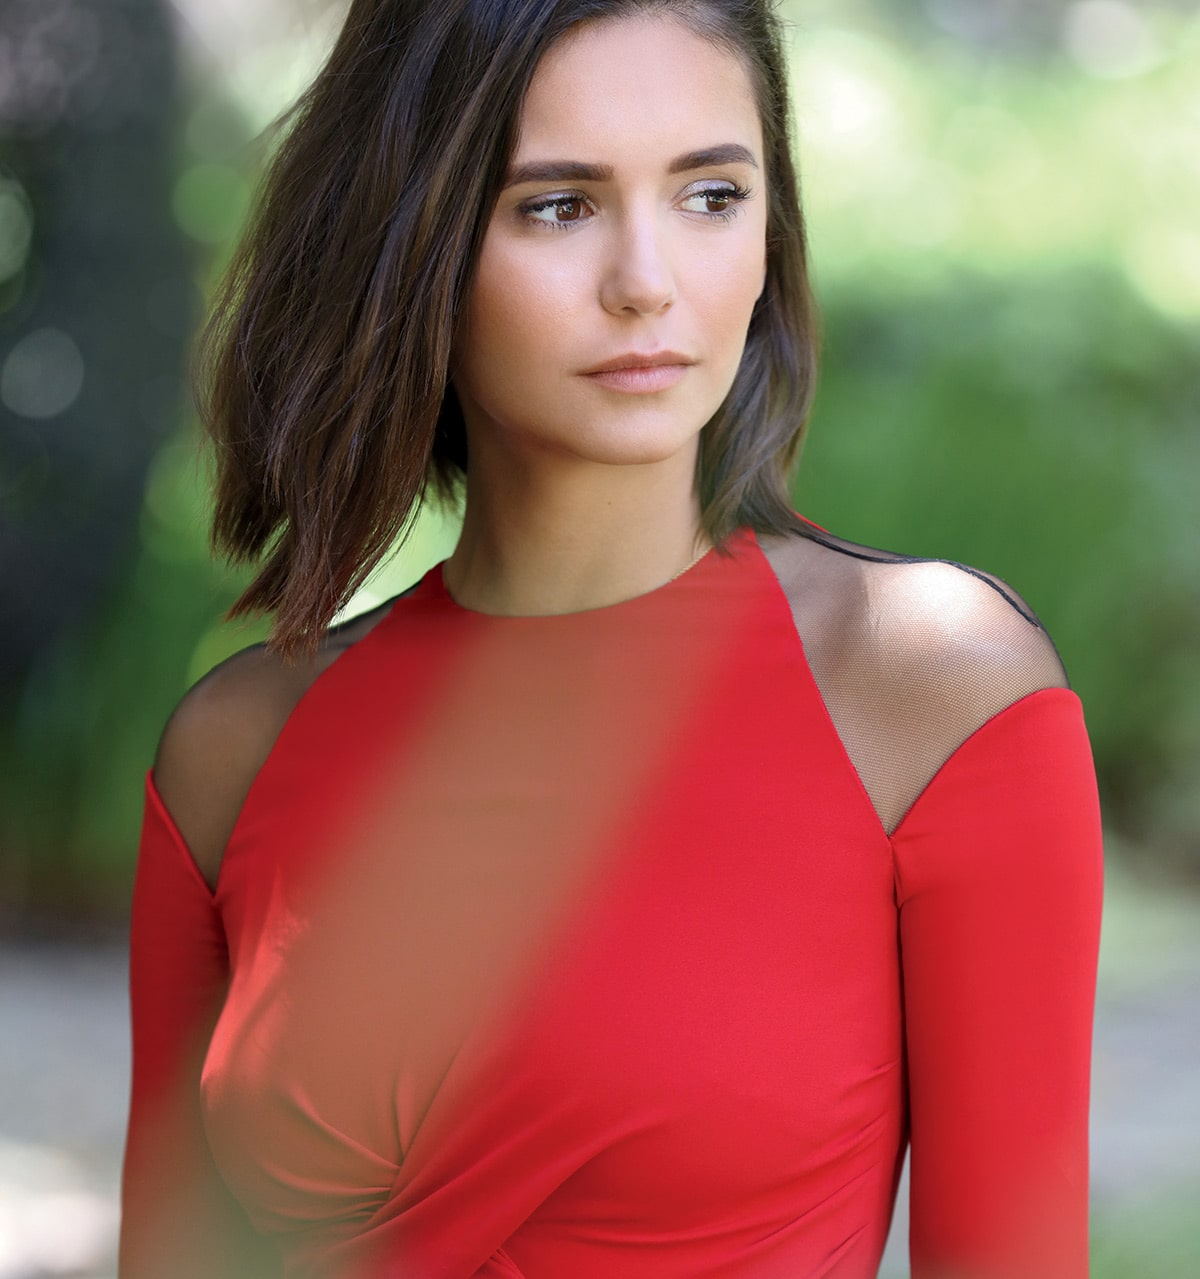 Fotos Nina Dobrev naked (65 photos), Sexy, Sideboobs, Boobs, swimsuit 2019